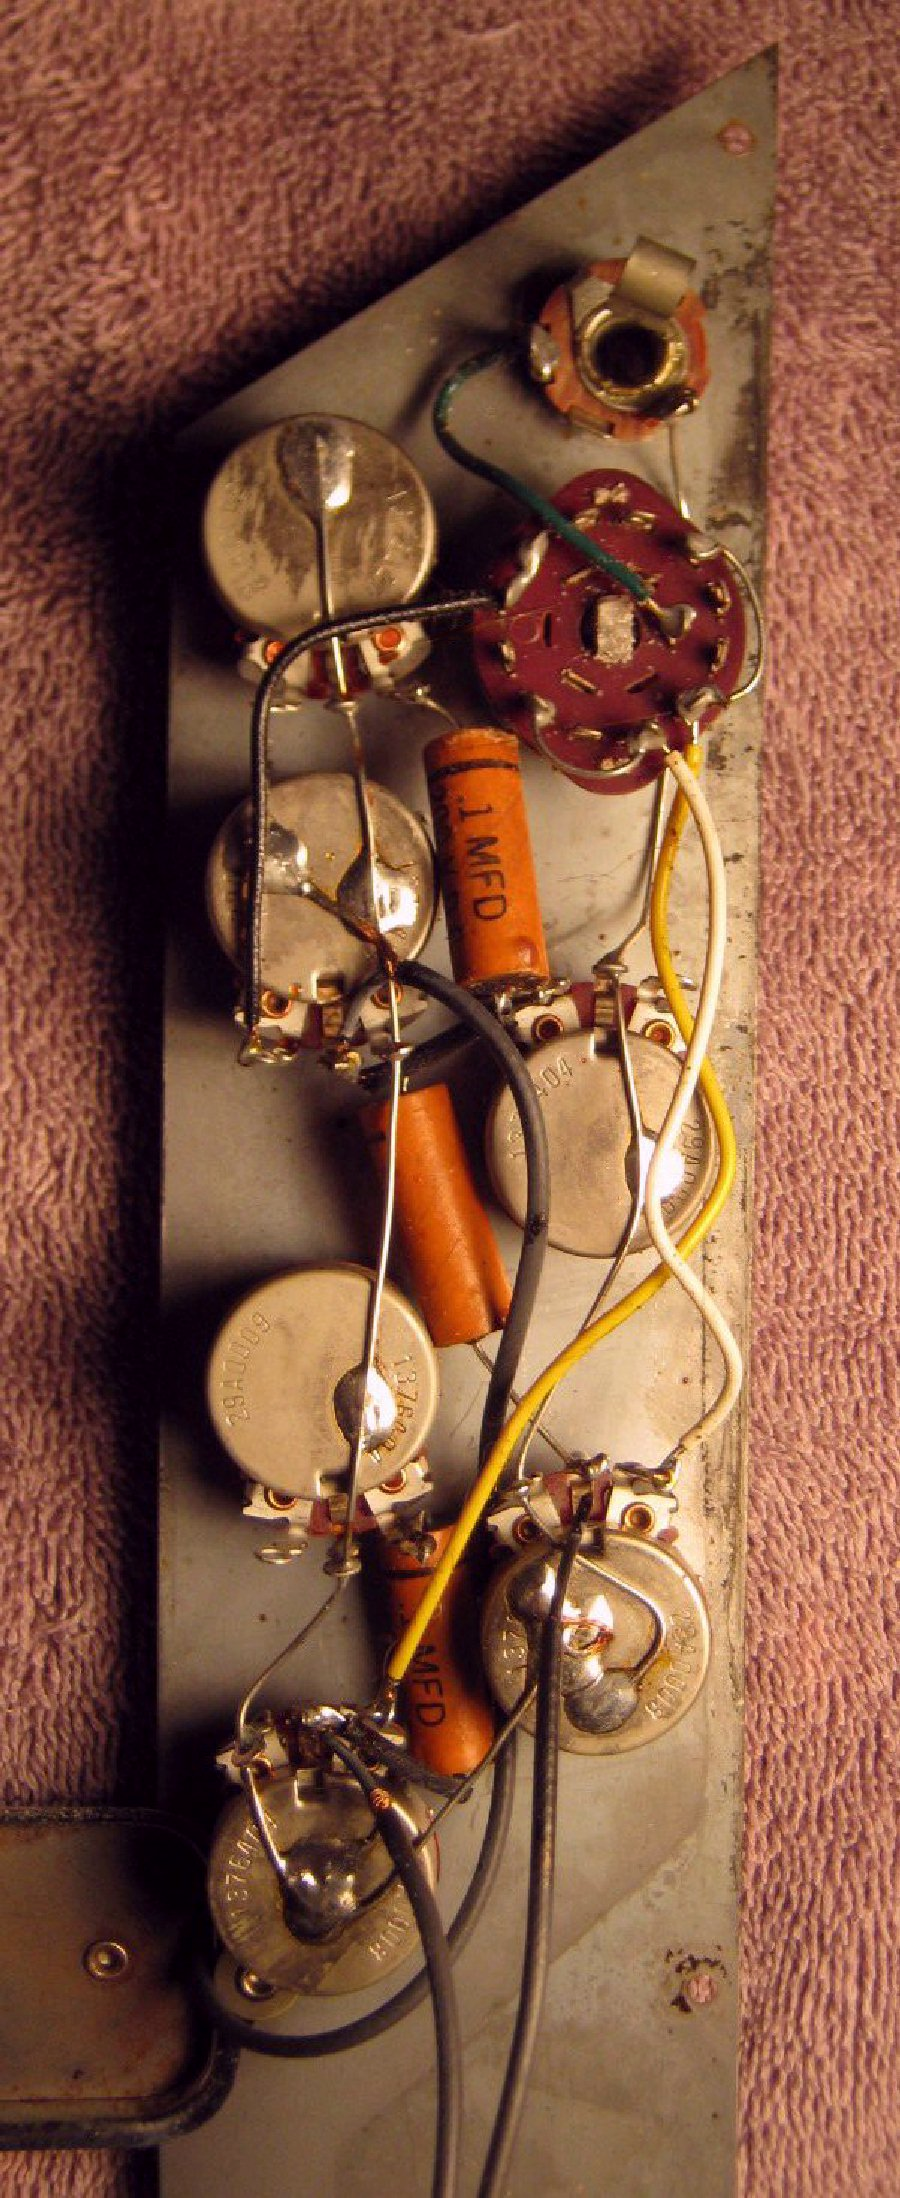 Kayvalueleader1p3 Kay Guitar Wiring Diagram Interpolating All The Above I Am Guessing That Cts Pots Model 29a0008 In This Is 250k Which Makes Reasonable Modern Electronics Sense